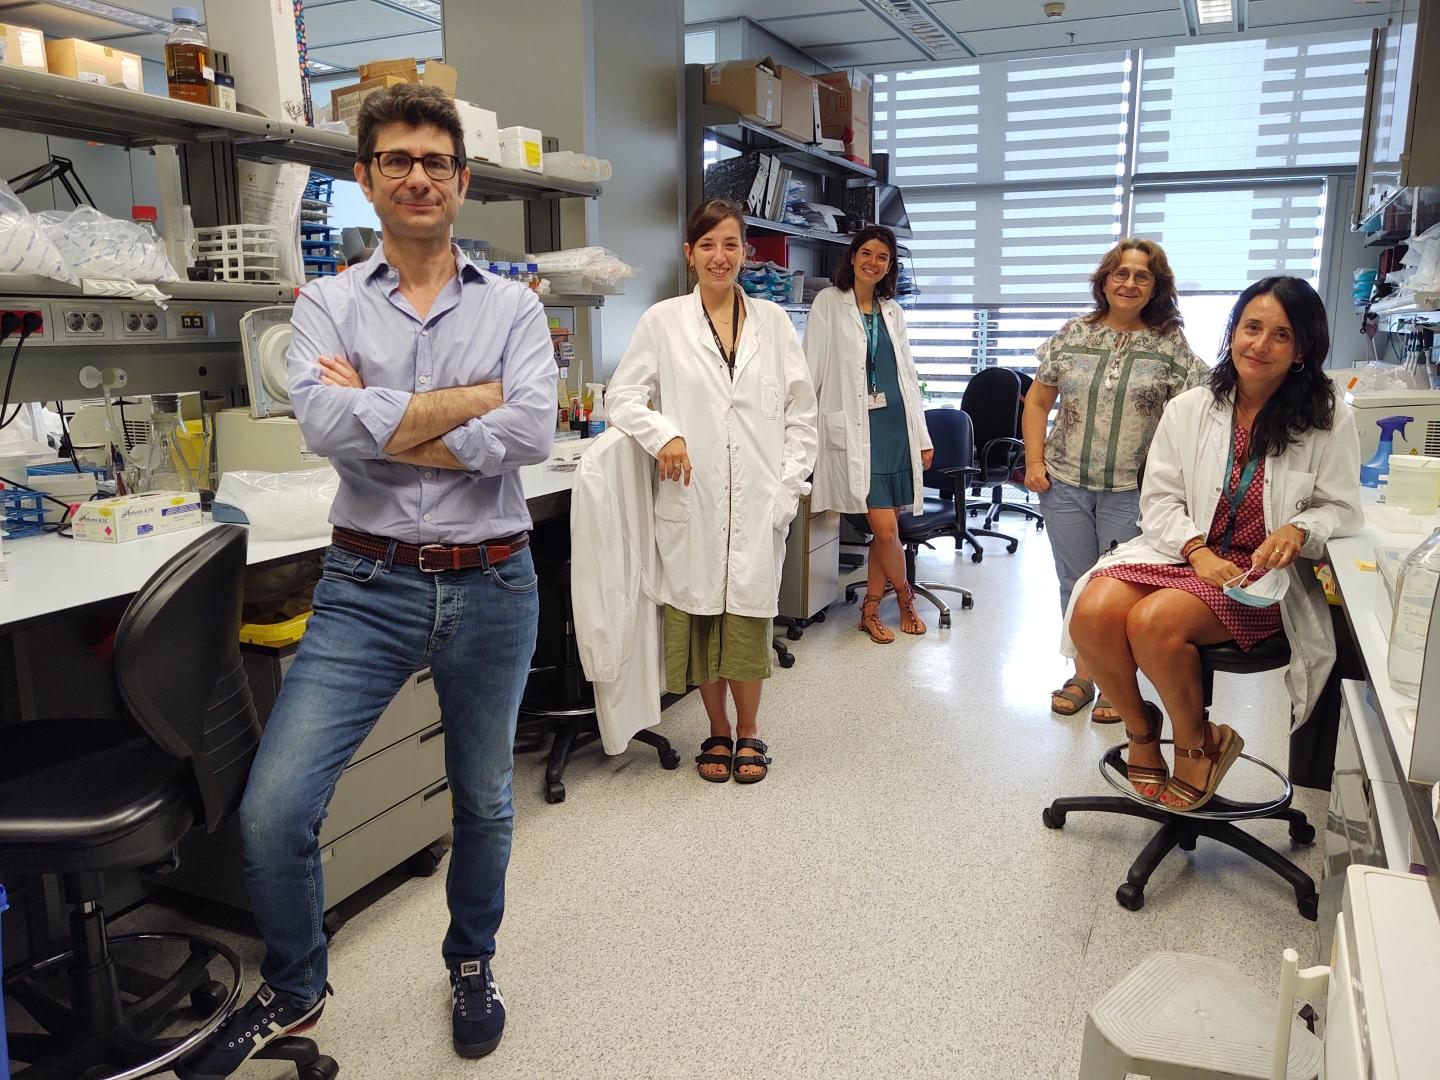 Proteins in blood cells research team. Pictures left to right: Luciano di Croce, Livia Condemi, Isabel Espejo Díaz, Cecilia Ballaré and Arantxa Guitiérrez Velázquez (Photo by Marta Vila)